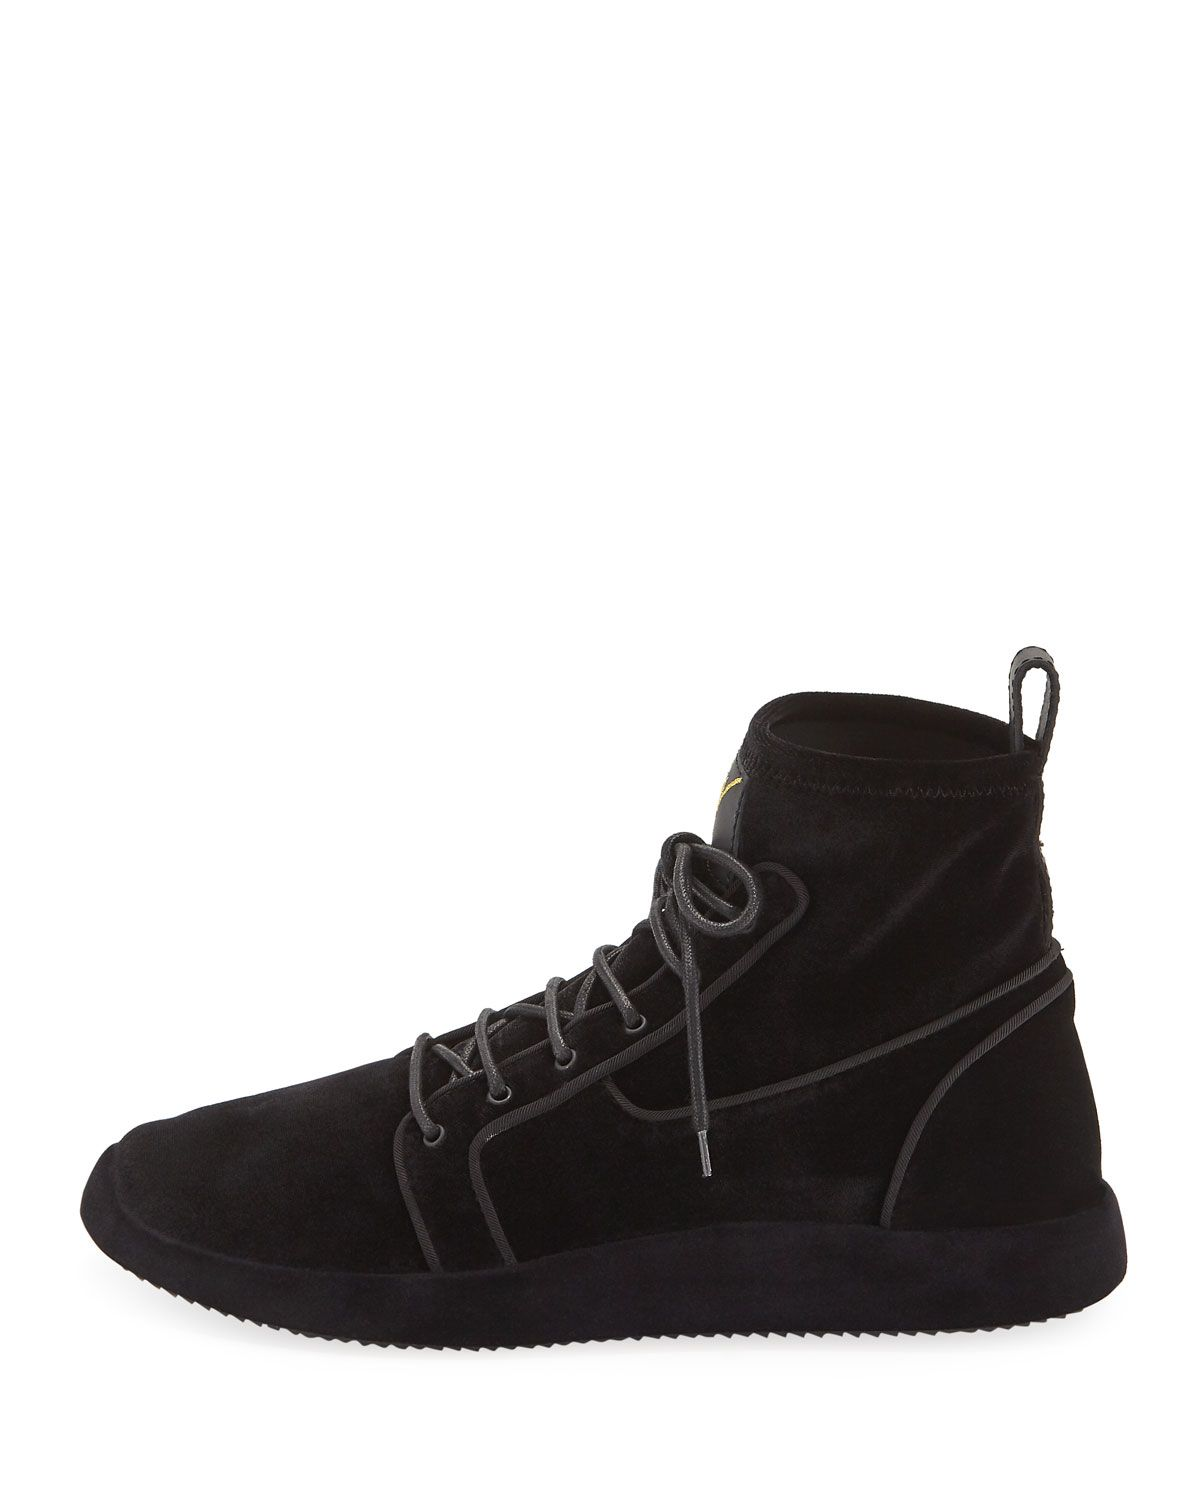 4e2af703ec4a4 Men's Land High-Top Velvet Sneakers | Products | Sneakers, High tops ...